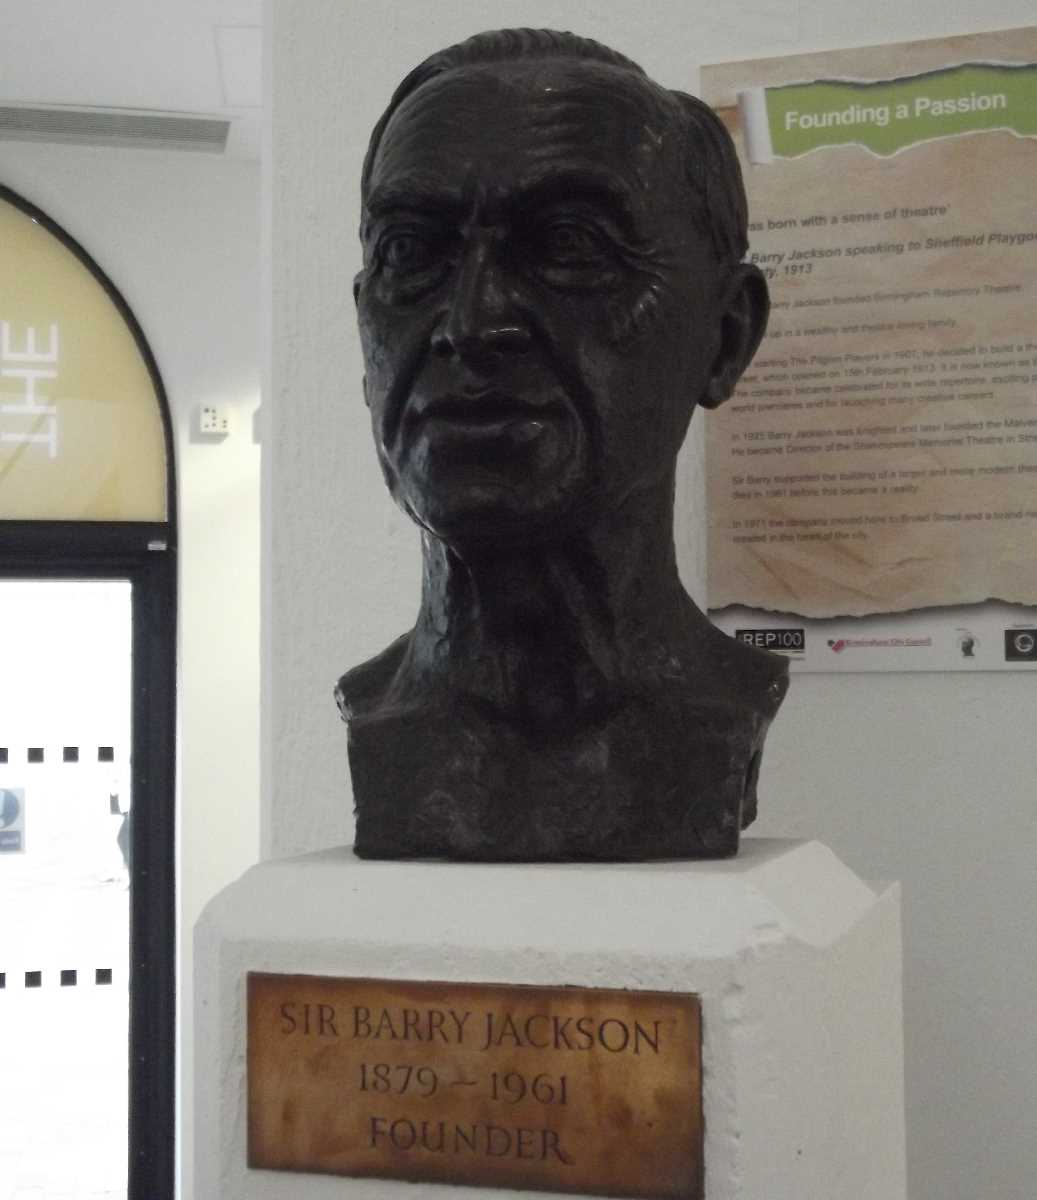 Sir Barry Jackson